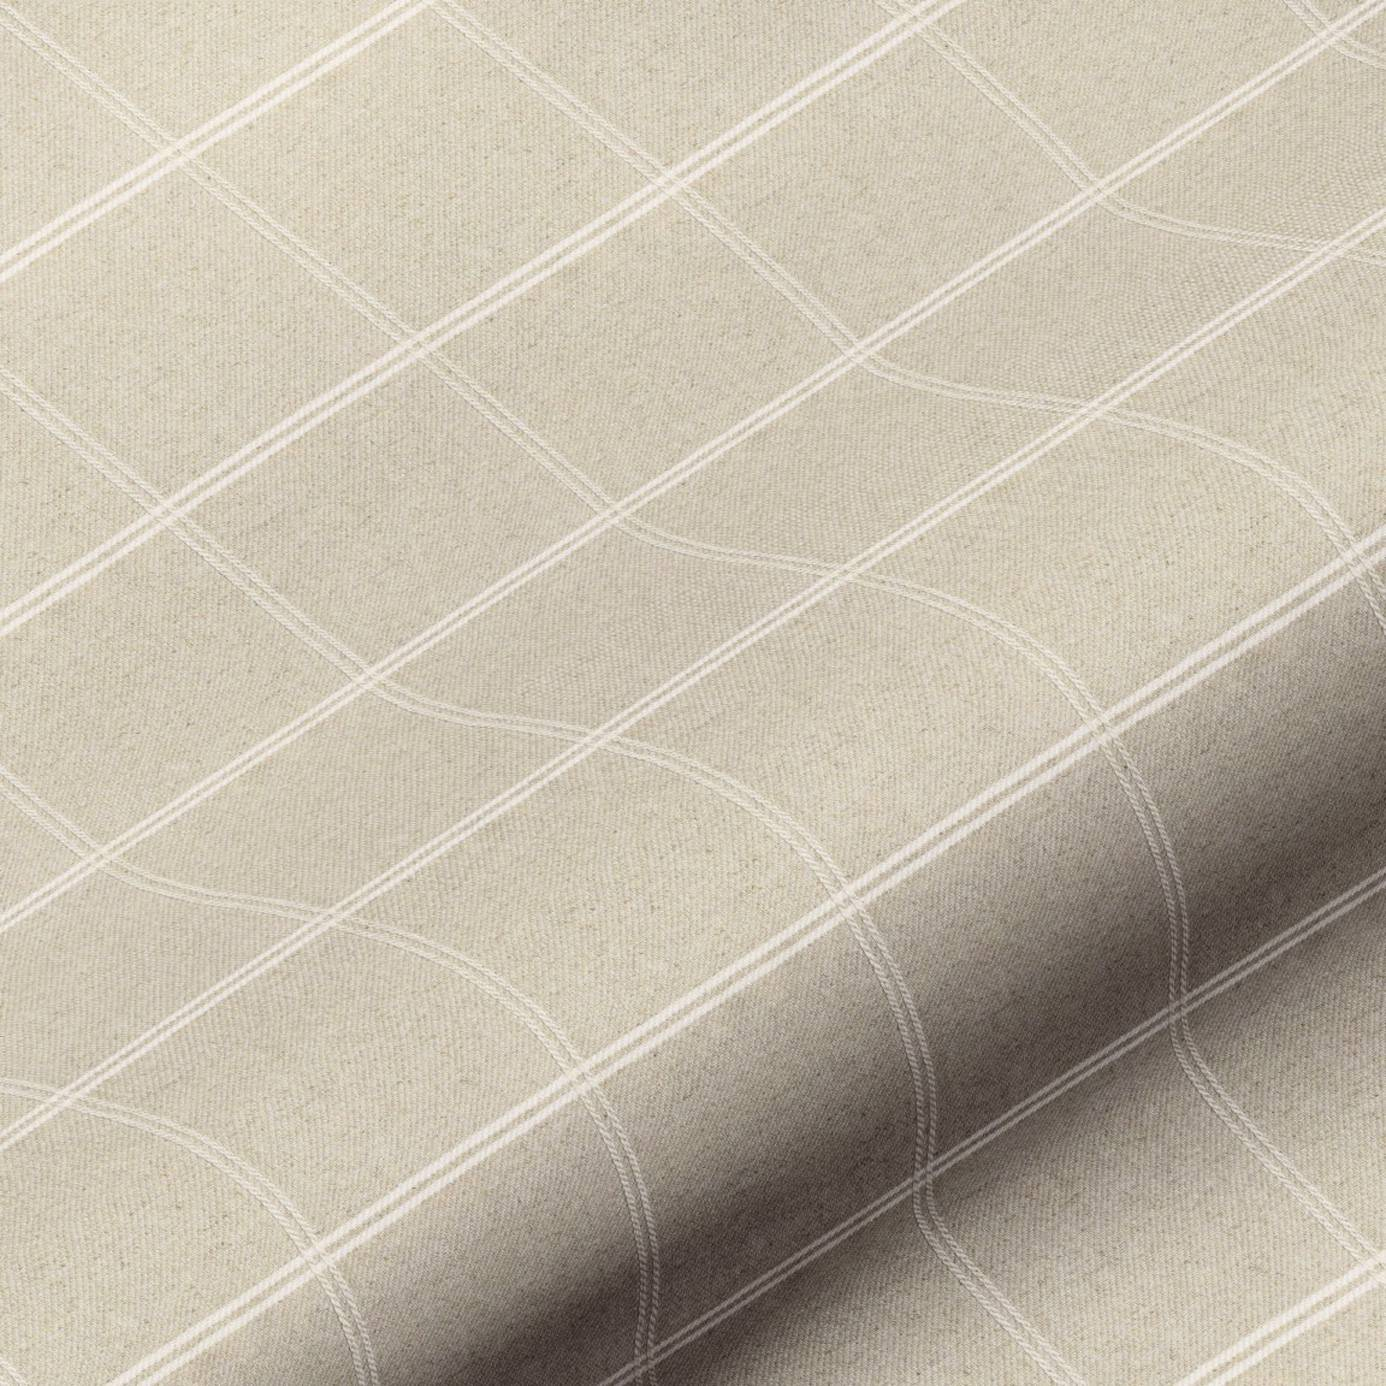 Galway Check Fabric - Natural (GALWAYCHECKNATURAL) - Art of the Loom ...